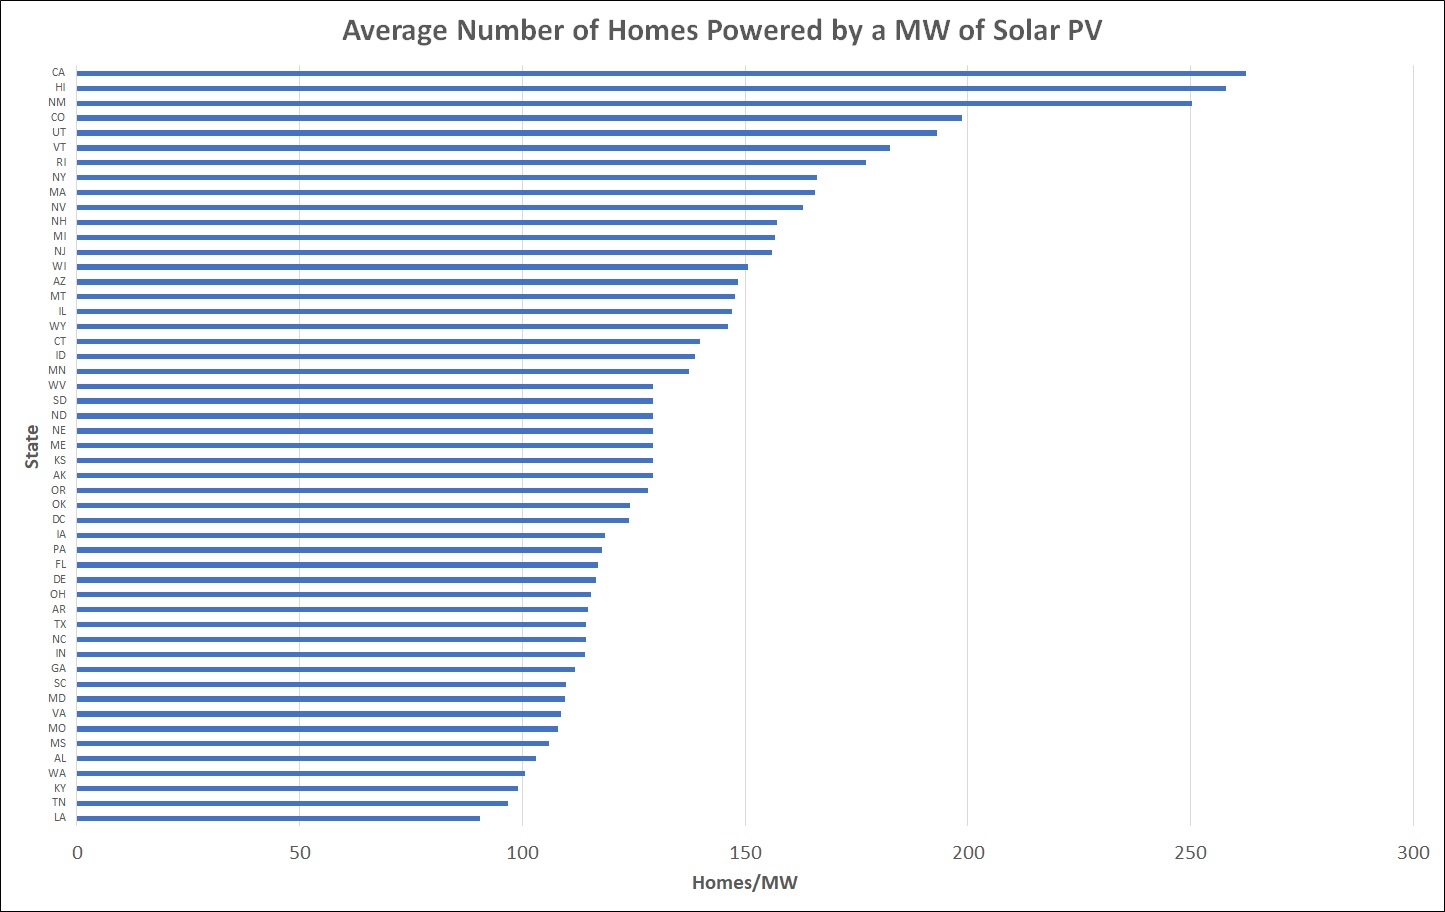 Average Number of Homes Power by Solar by State